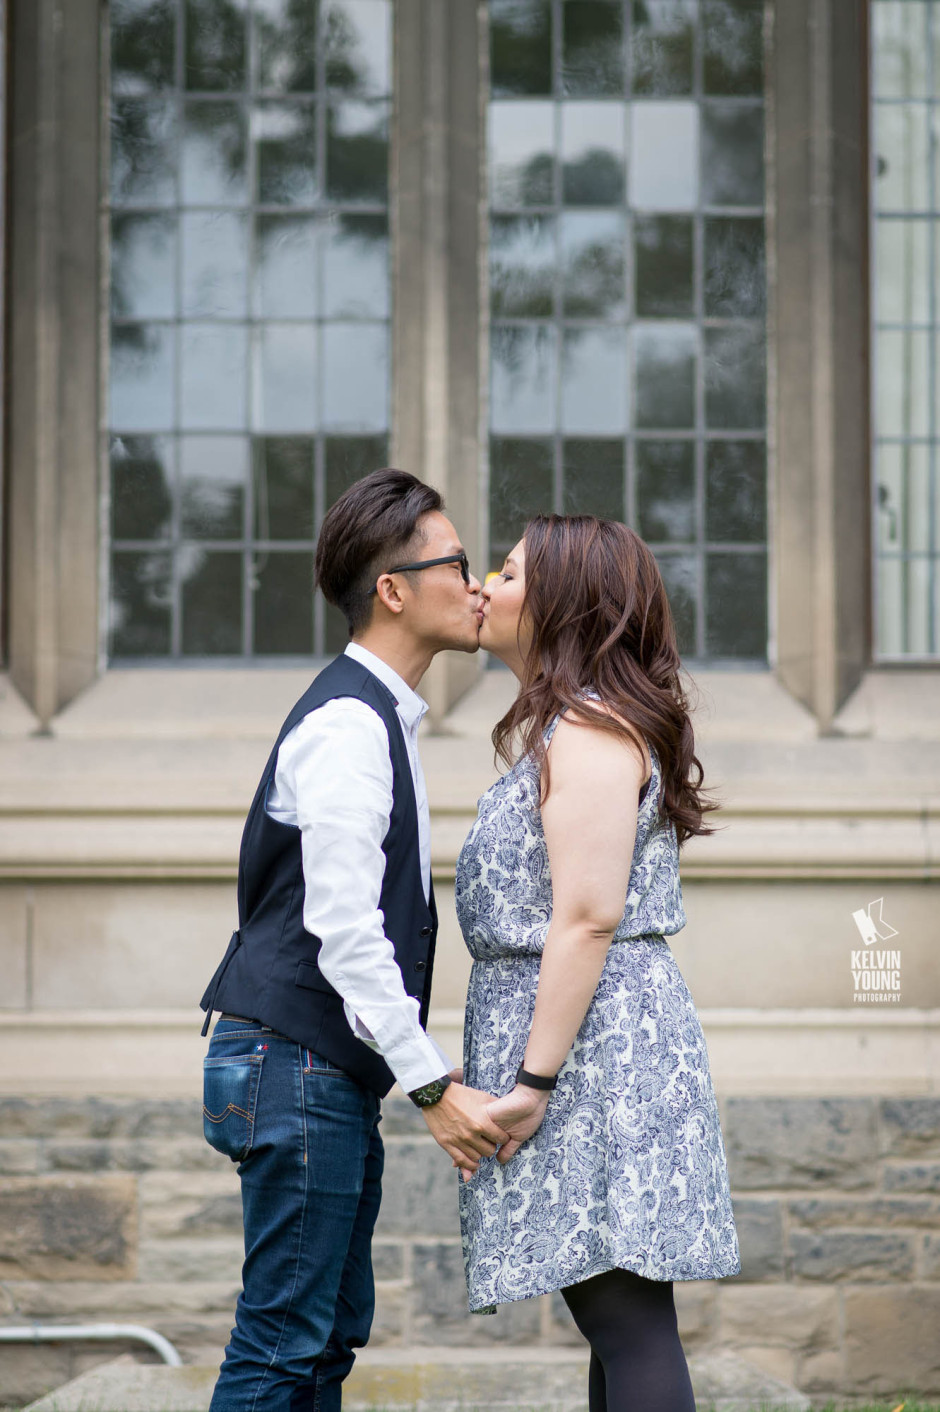 KYP15-Miranda-Wylie-Toronto-Engagement-Photography-Session-14